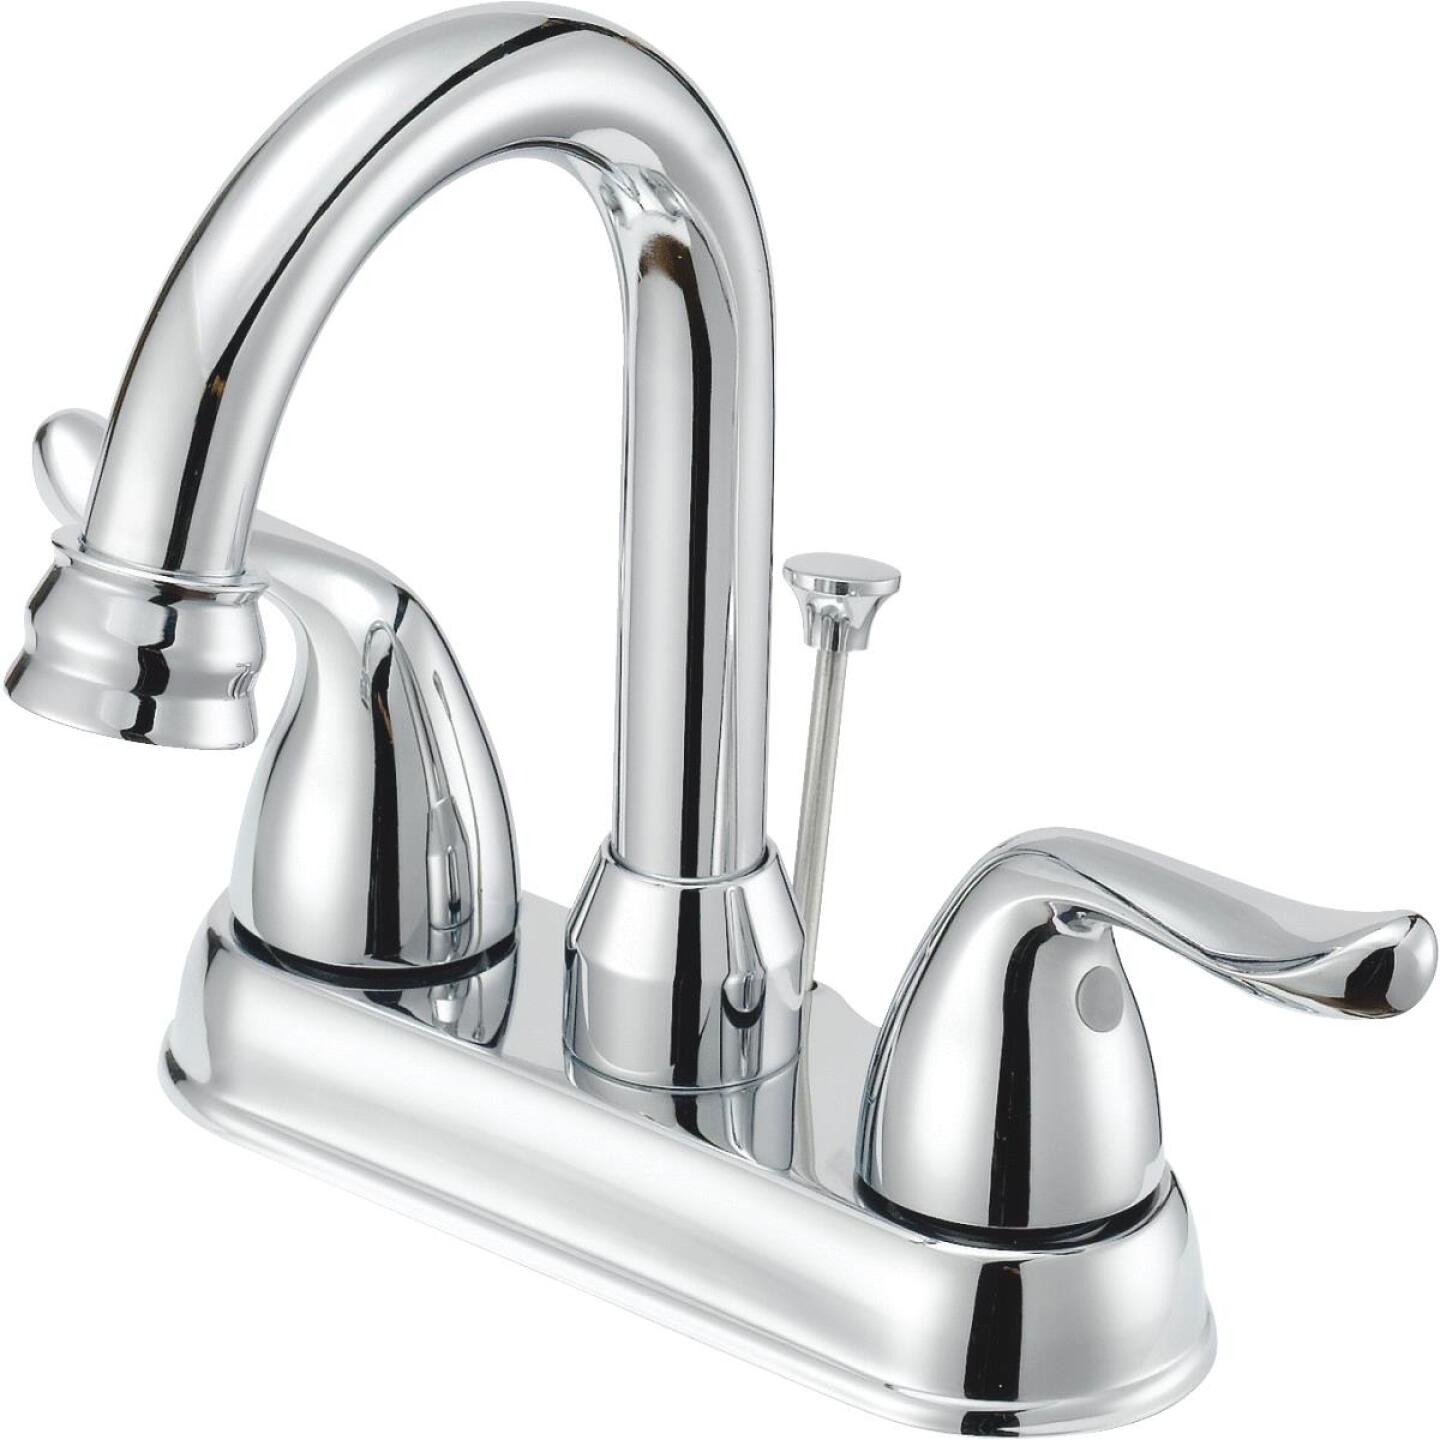 Home Impressions Chrome 2-Handle Lever 4 In. Centerset Hi-Arc Bathroom Faucet with Pop-Up Image 1